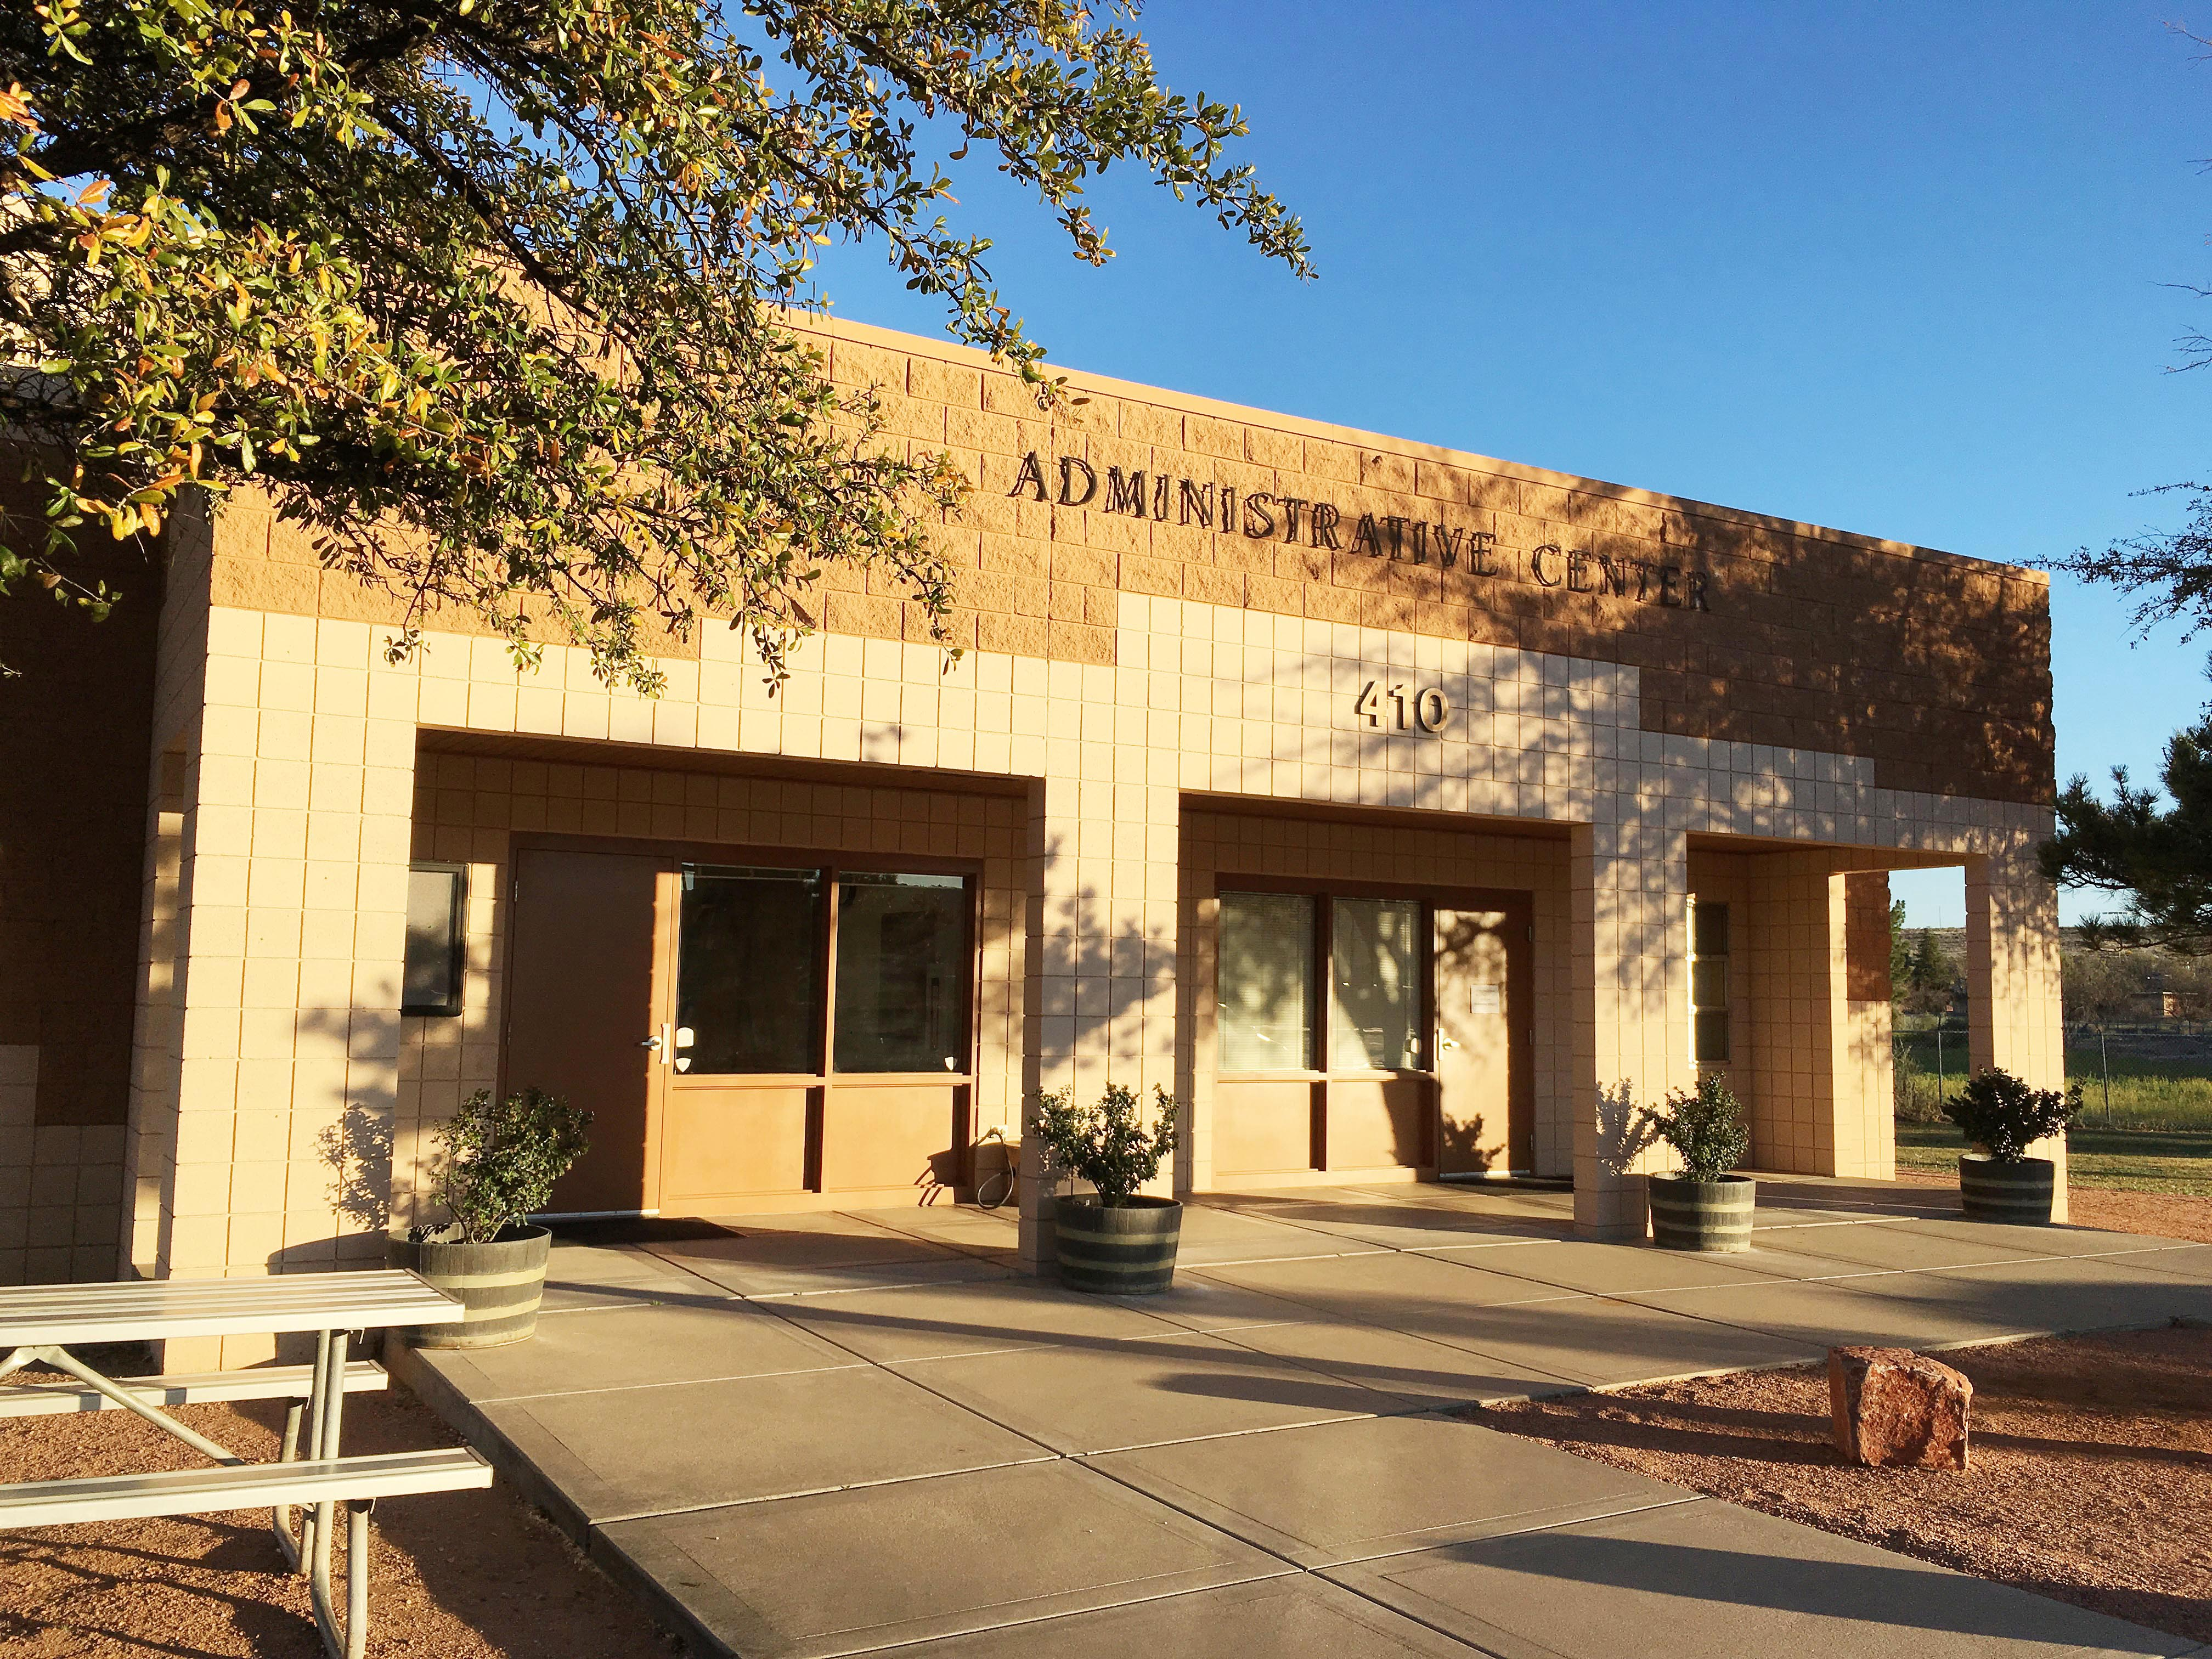 Cvusd Calendar 2022 2023.Camp Verde School Board Approves Four Day Schedule At Least Through 2022 2023 School Year The Verde Independent Cottonwood Az